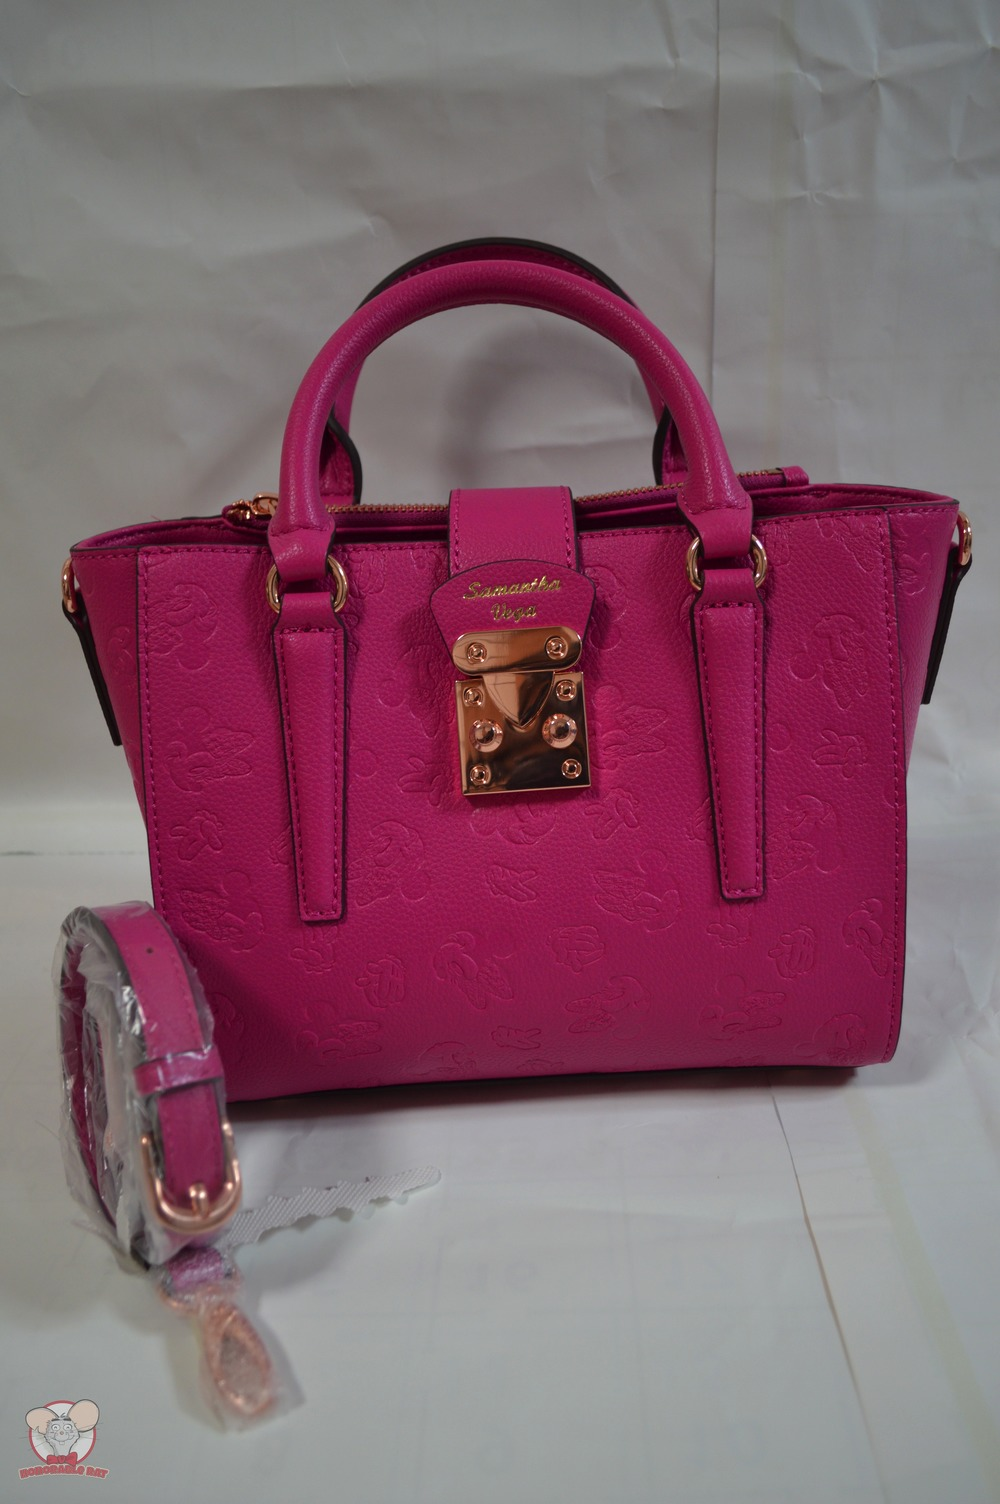 Samantha Vega Bag with Minnie Print